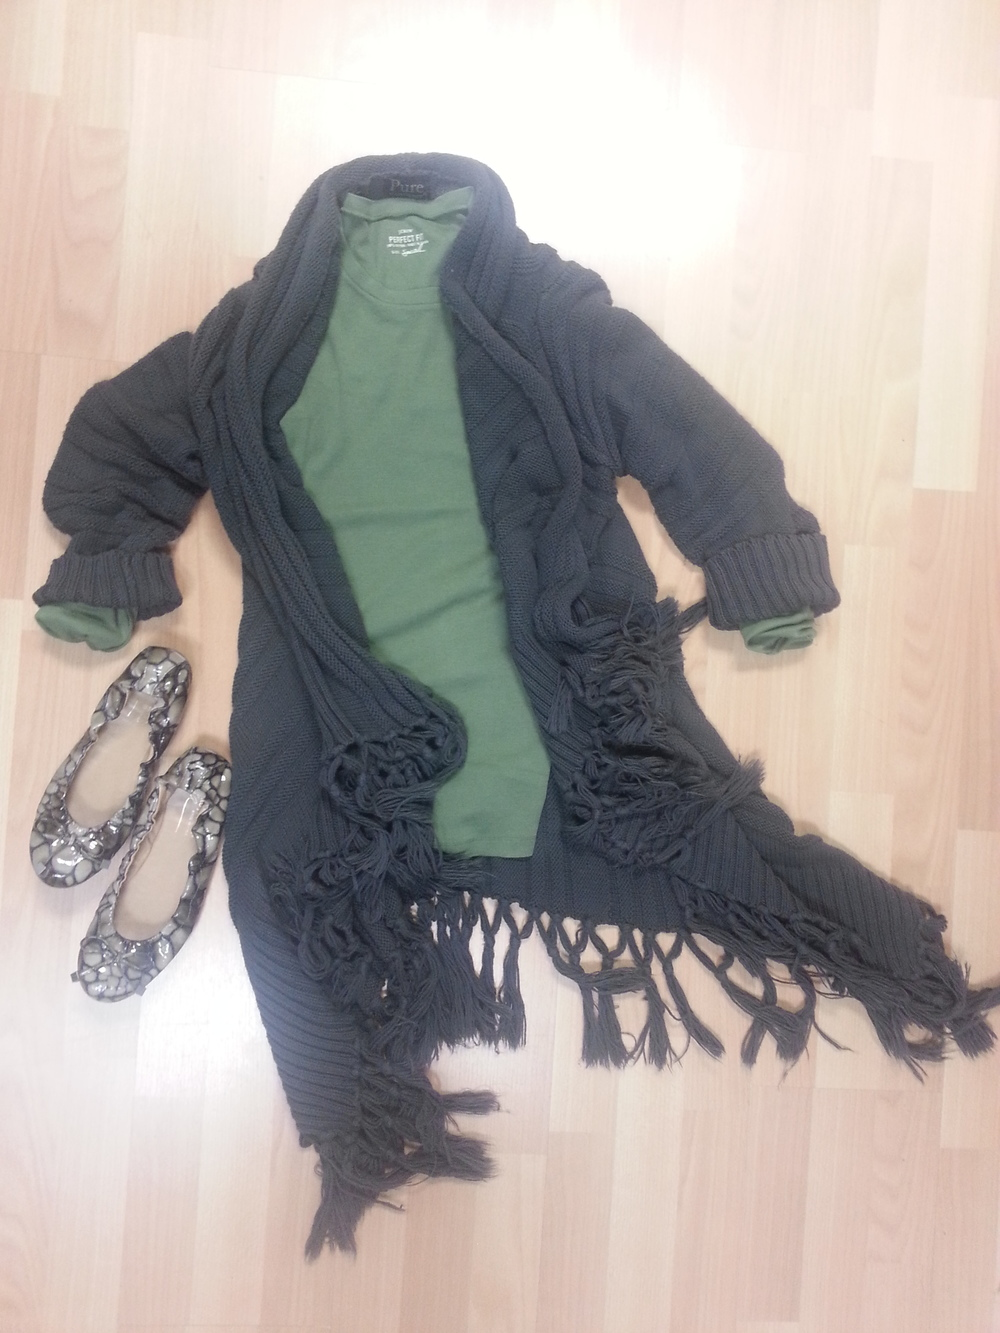 Donald Pliner patent flats, fringed cardigan long sweater, olive J. Crew tee